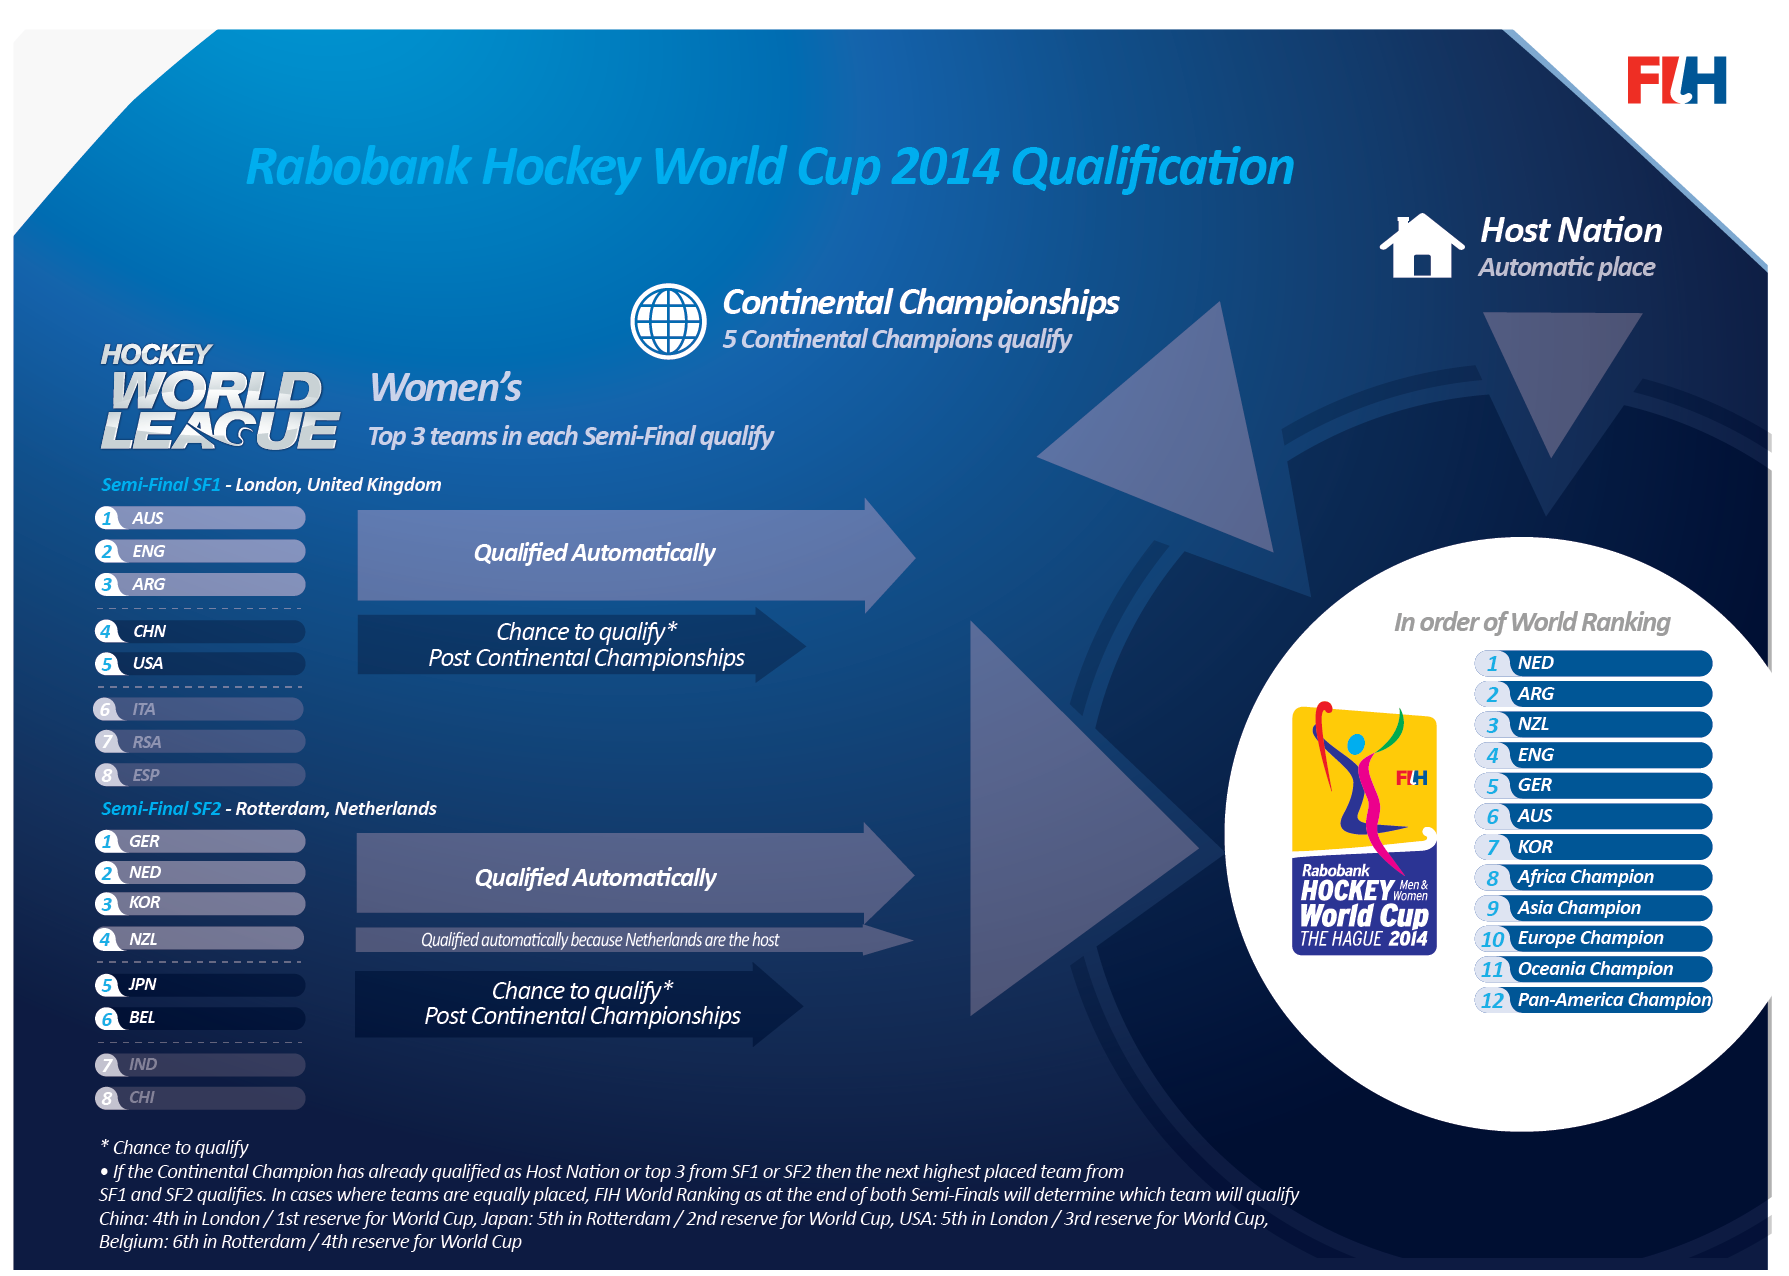 Rabobank Hockey World Cup Qualification Process - Women